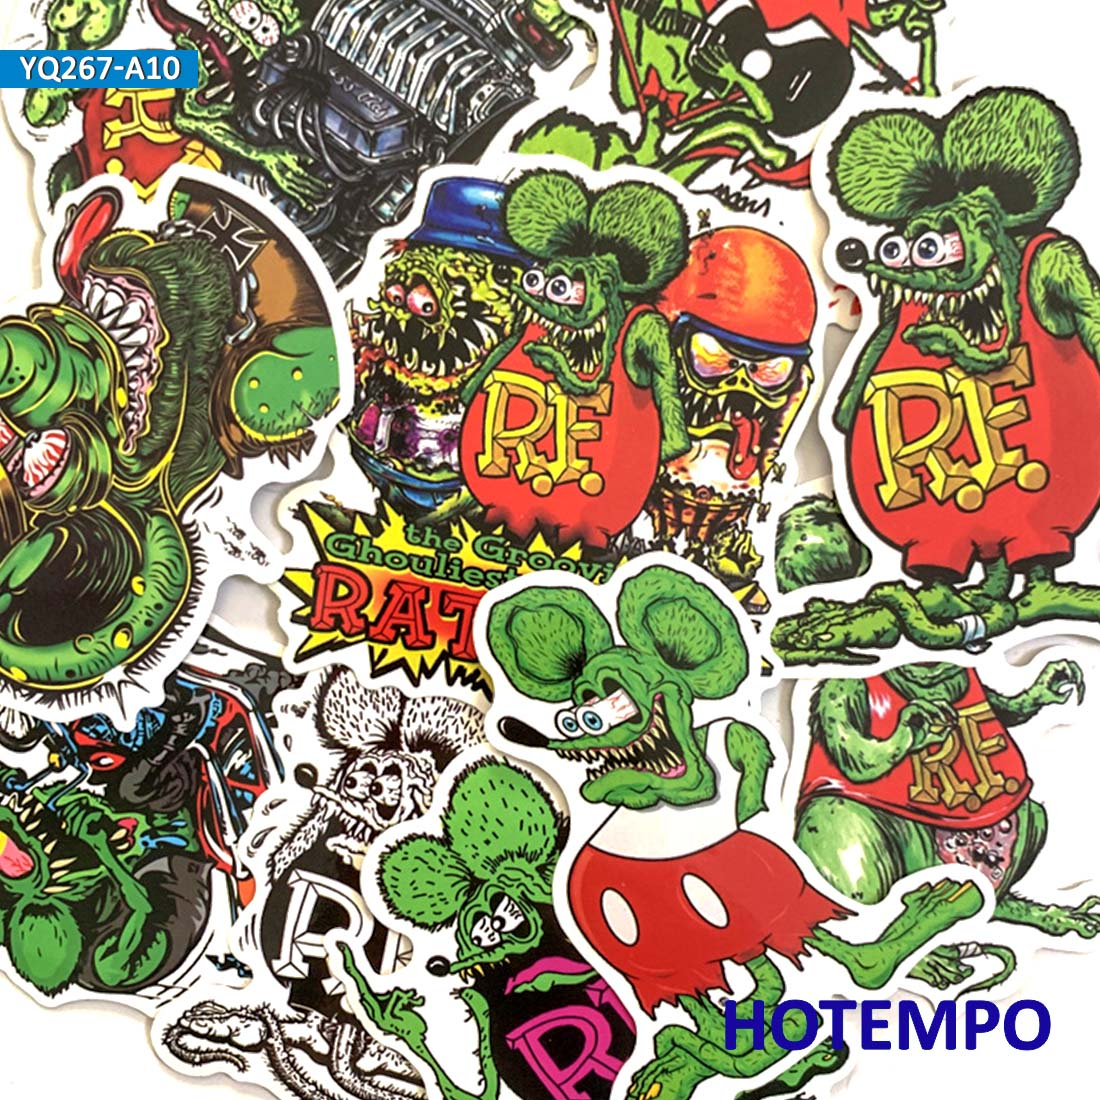 10pcs Rat Fink Mouse Stickers For Mobile Phone Laptop Luggage Guitar Case Skateboard Bike Car Stickers